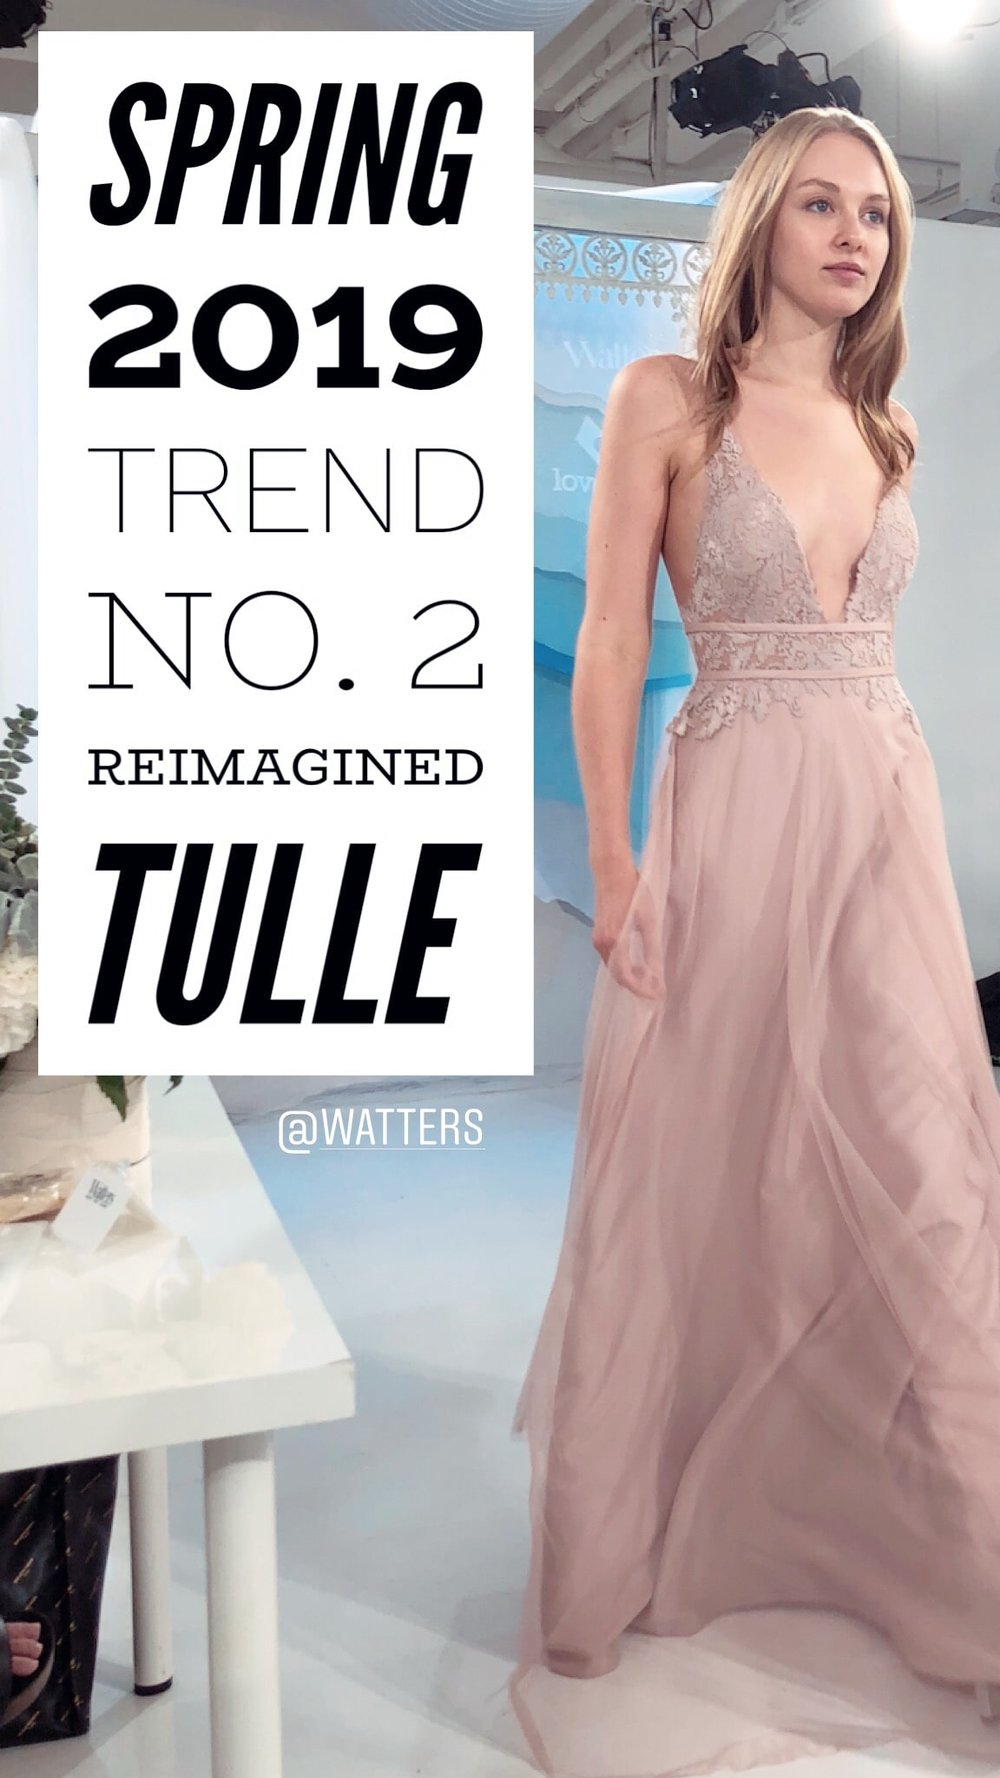 Watters takes tulle to a whole new level